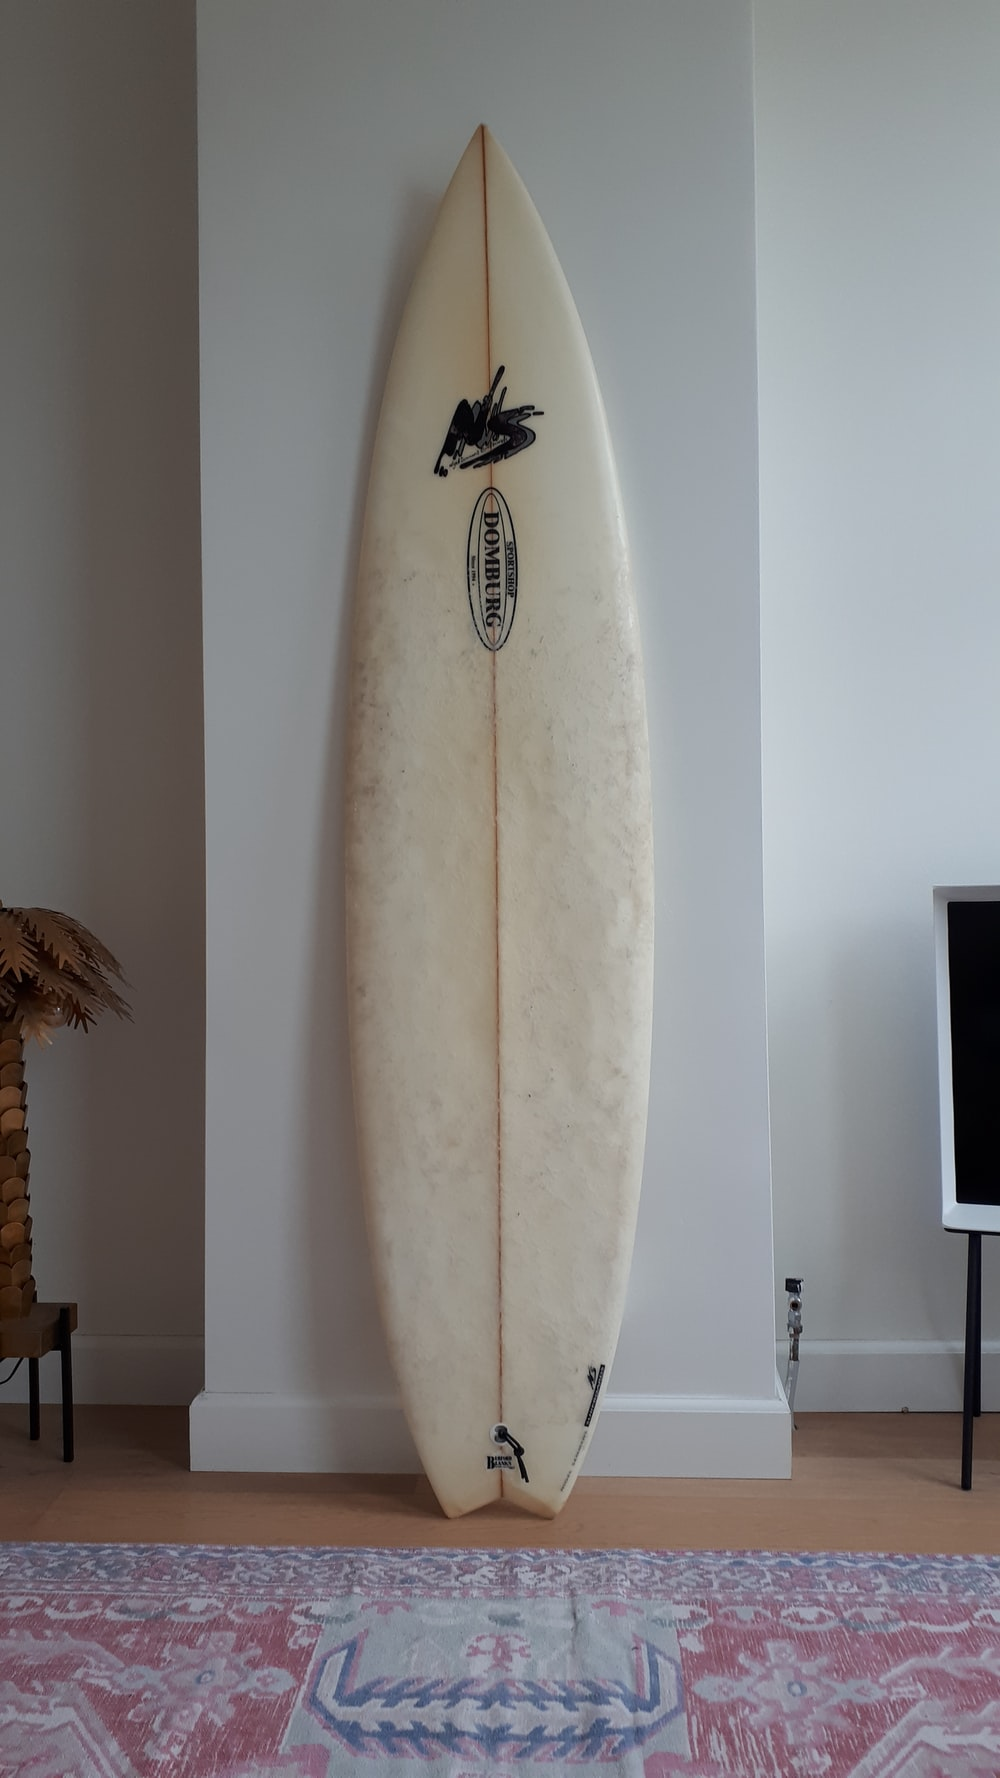 white surfing board on wall